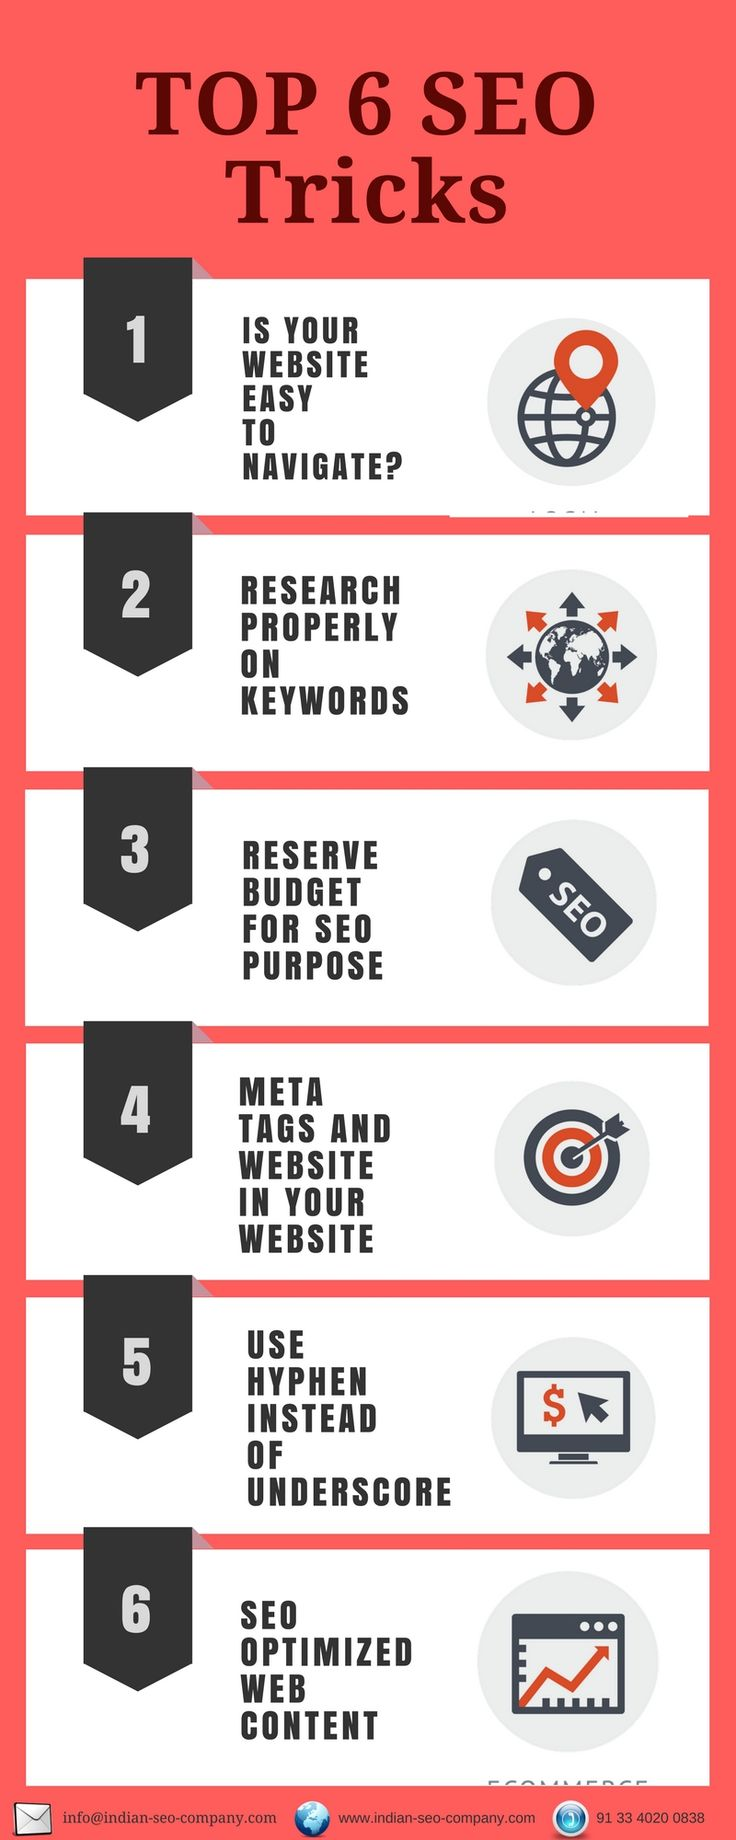 Want to know the best SEO tricks? Here are some SEO tips and tricks that you may follow to optimize your website better in 2017.